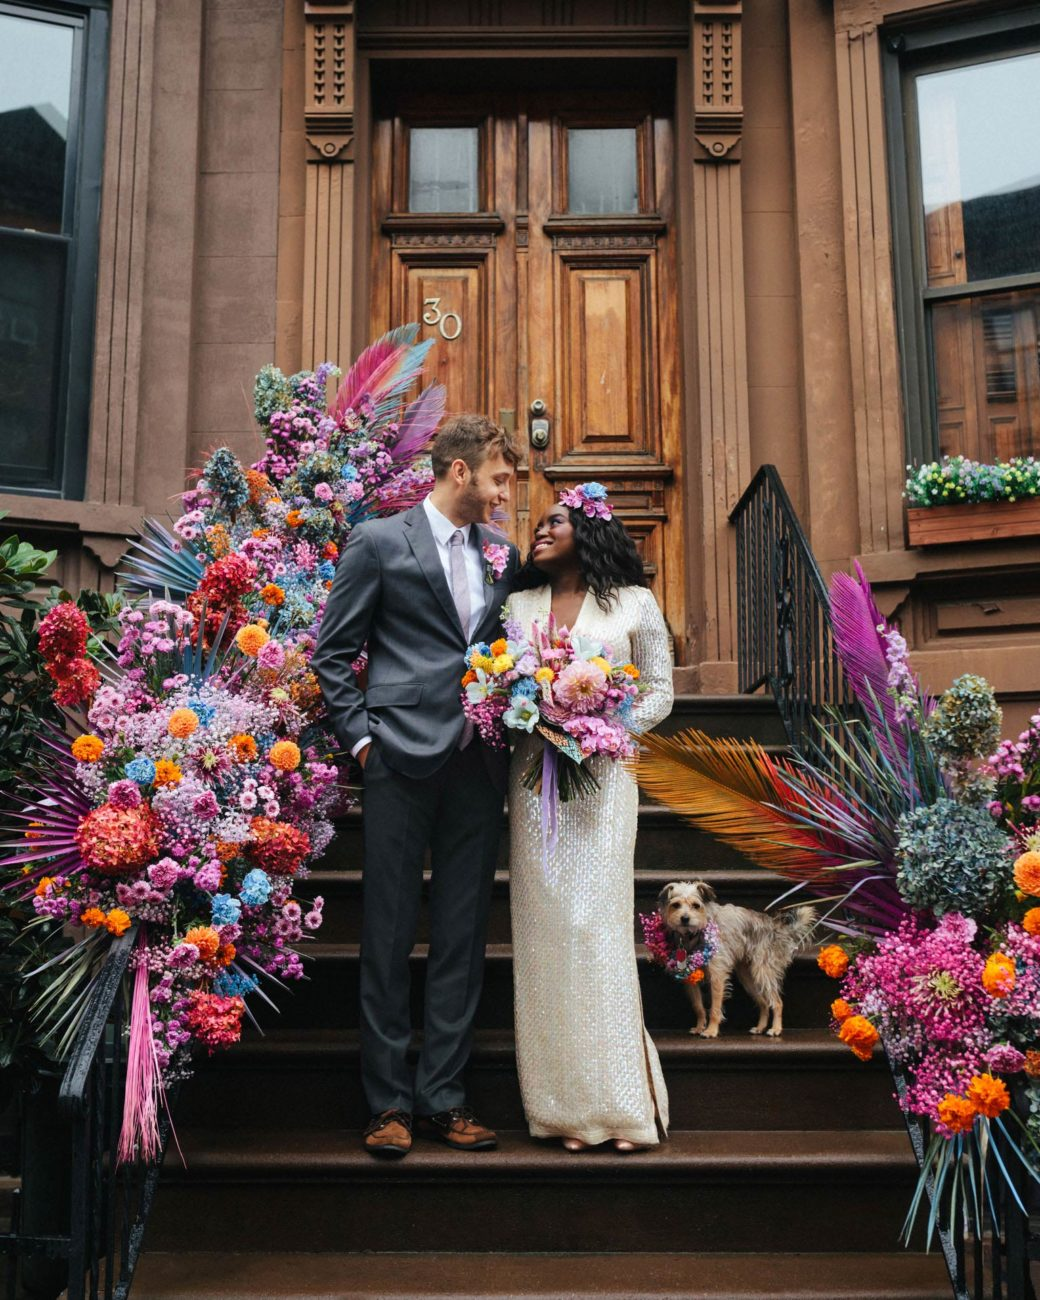 NYC stoop wedding elopement with vintage dress and rainbow floral installation